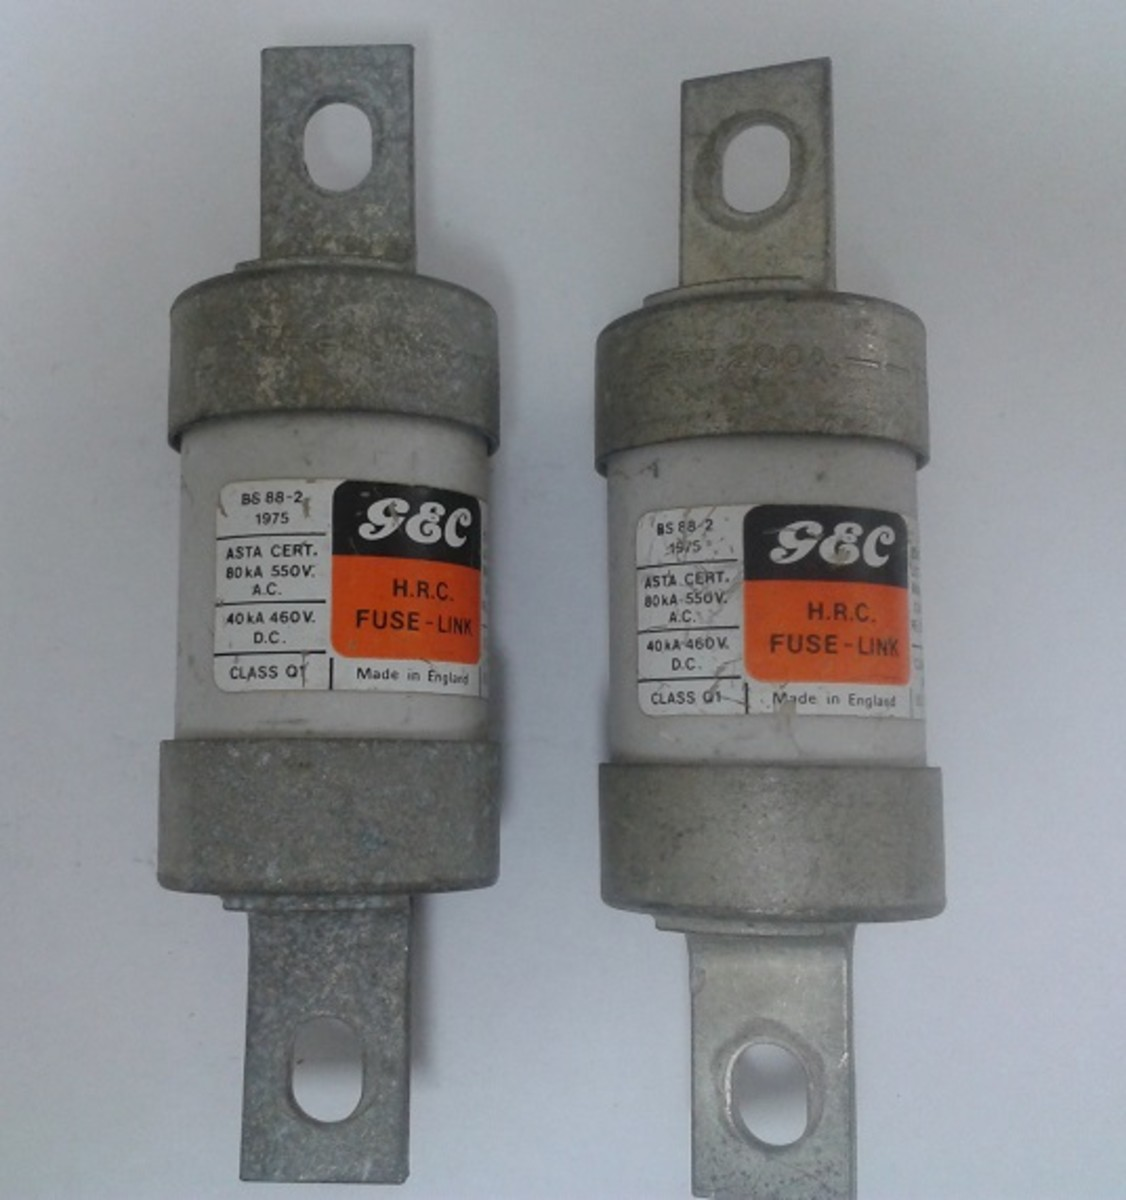 high-rupturing-capacity-hrc-fuses